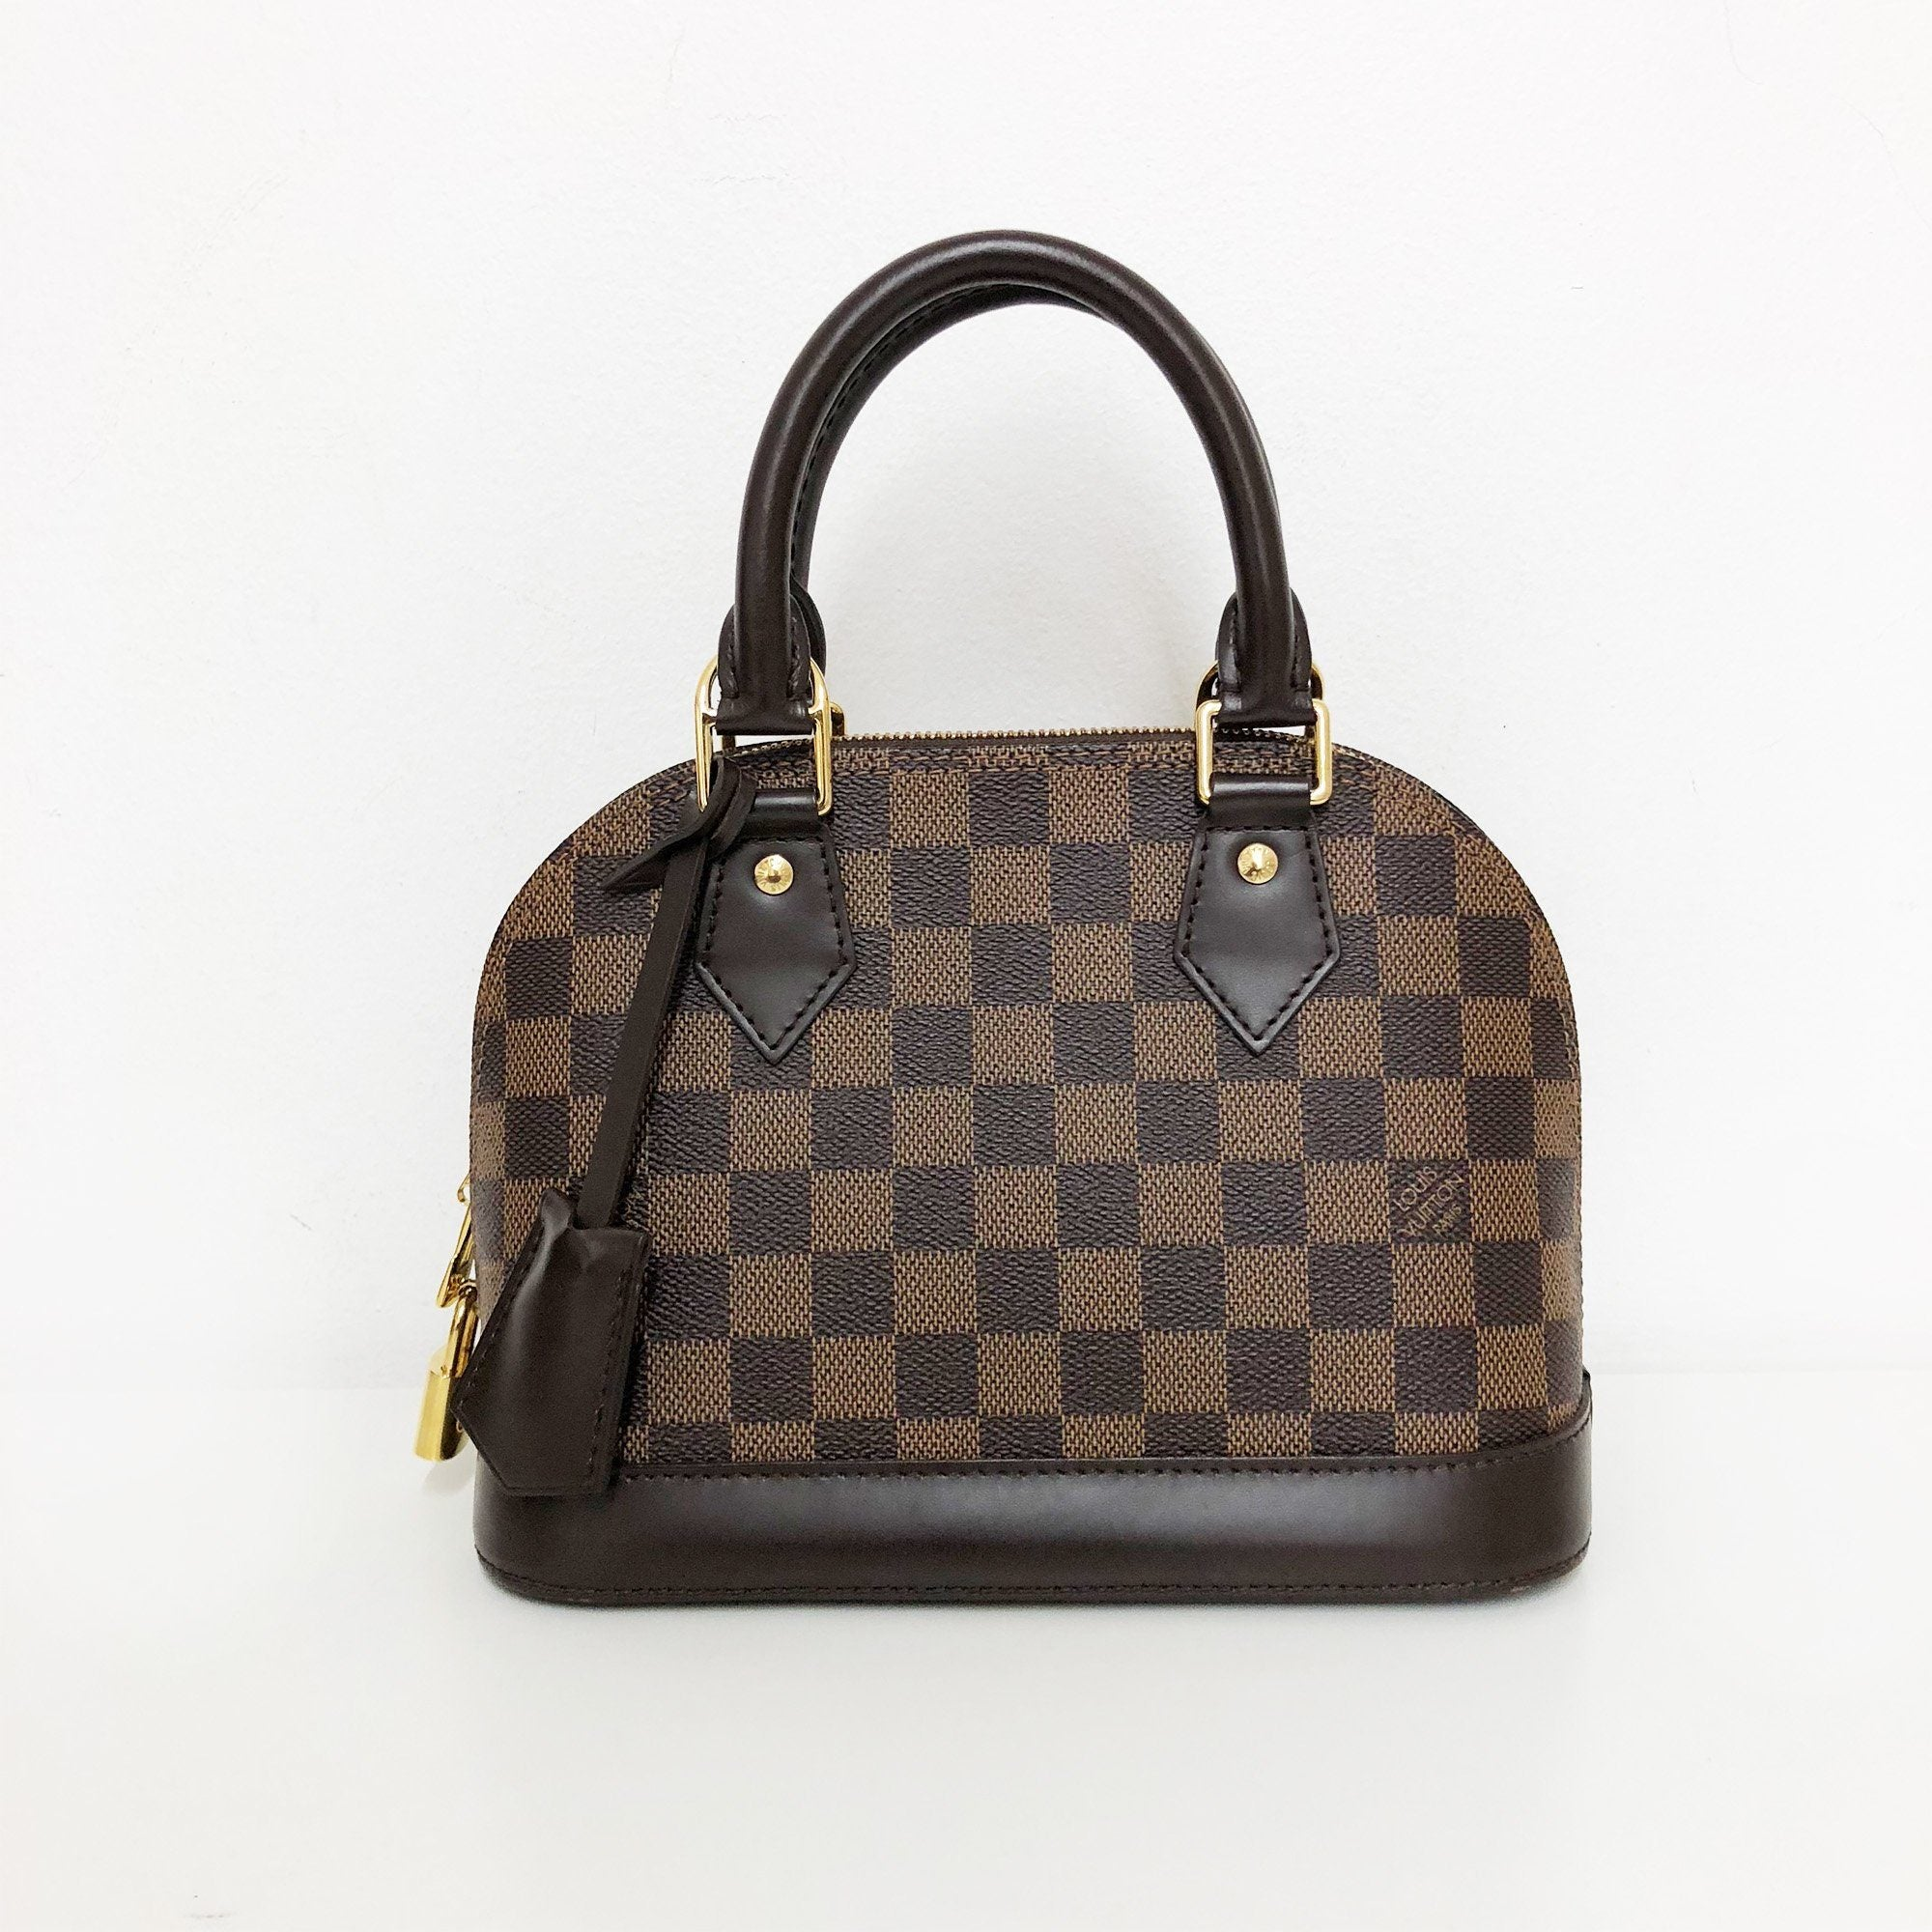 Louis Vuitton Alma Damier BB tote bag